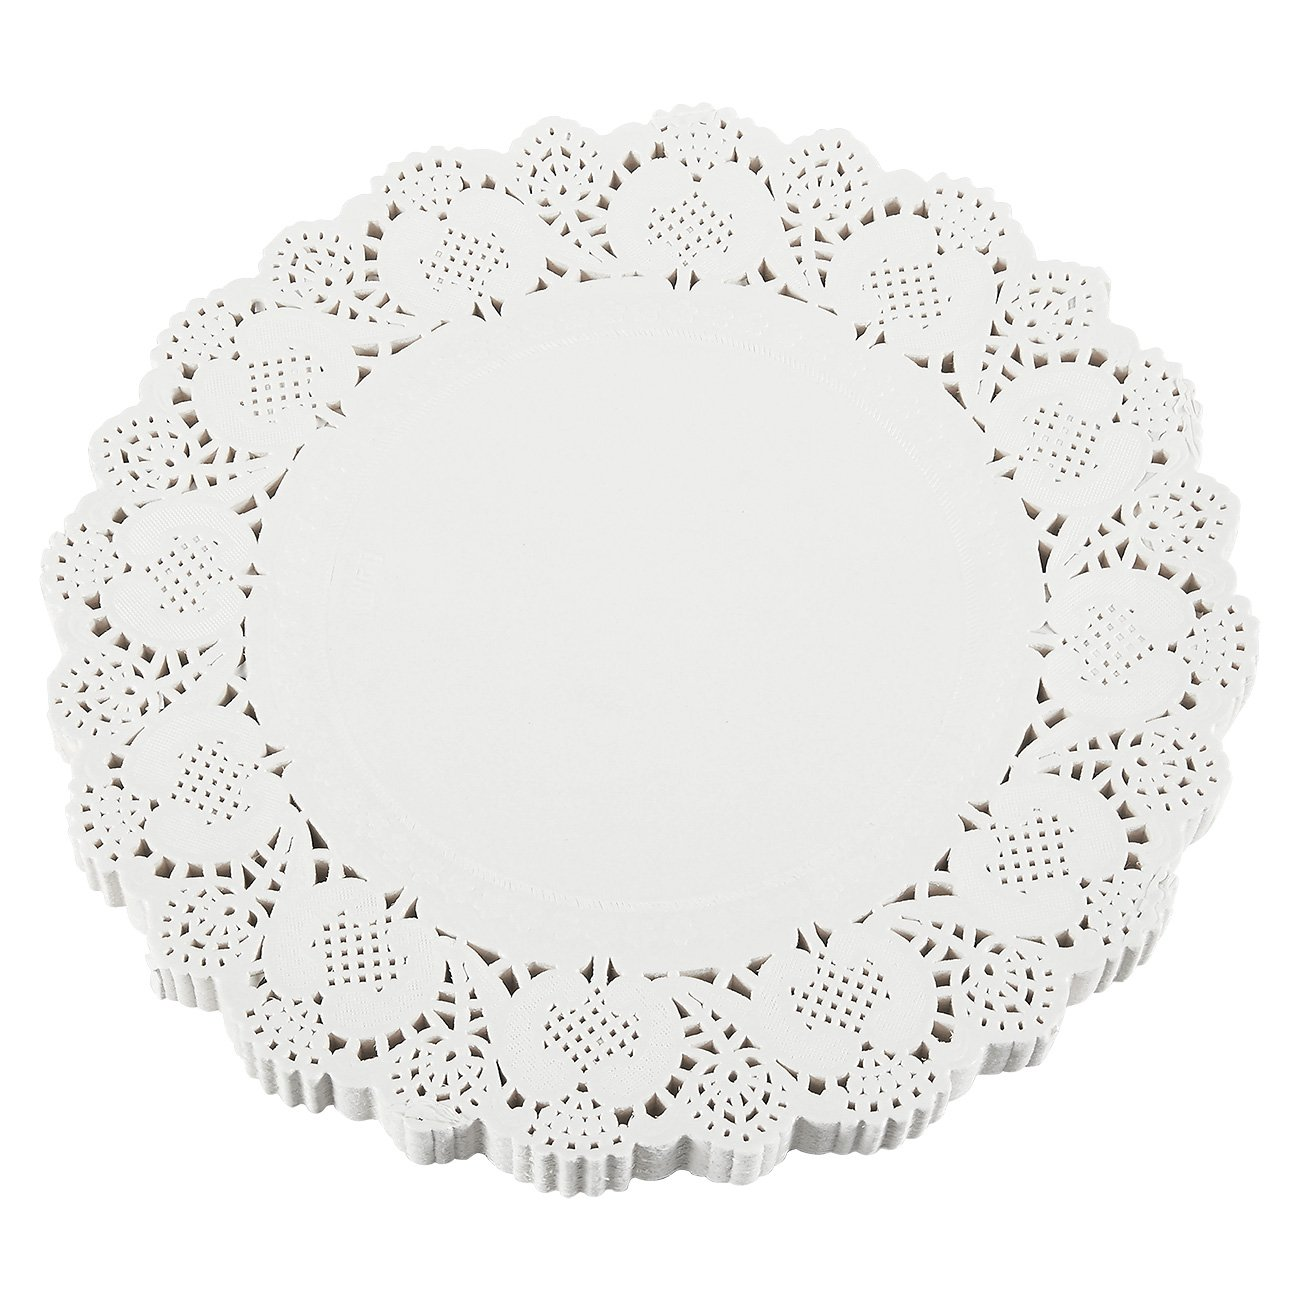 Paper Doilies – 250-Pack Round Lace Placemats for Cakes, Desserts, Baked Treat Display, Ideal for Weddings, Formal Event Decoration, Tableware Decor, White - 12 Inches in Diameter